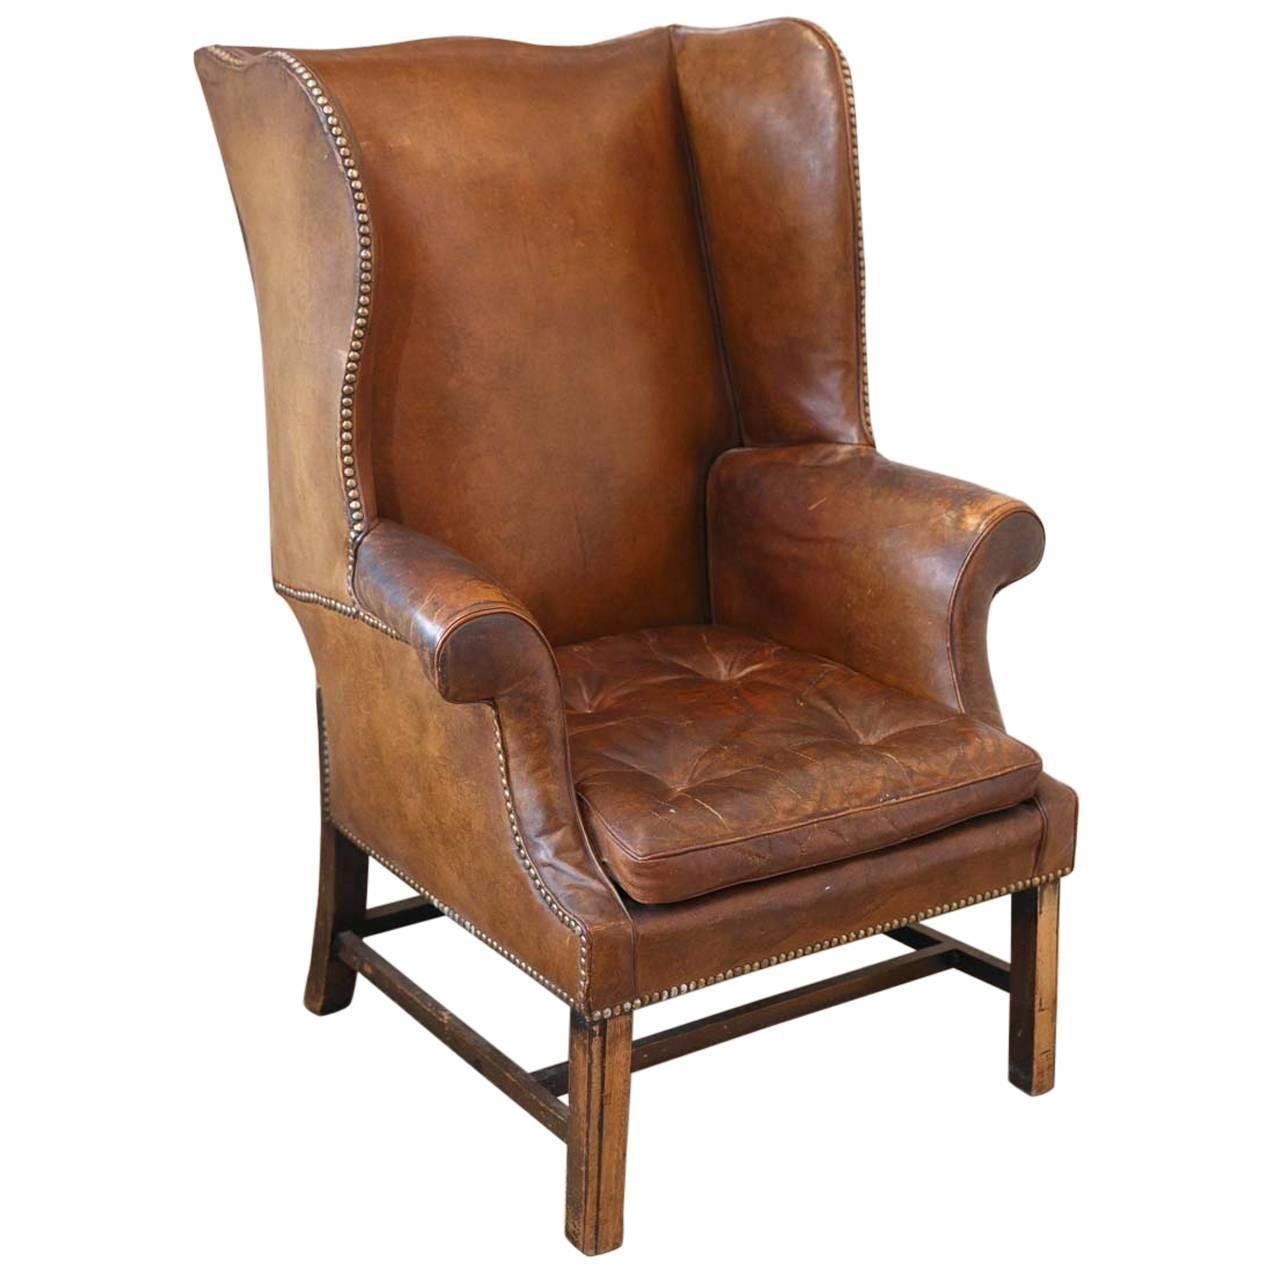 Custom modern chippendale wing chair by ethan allen at 1stdibs - French Leather Wingback Chair From The 1920s